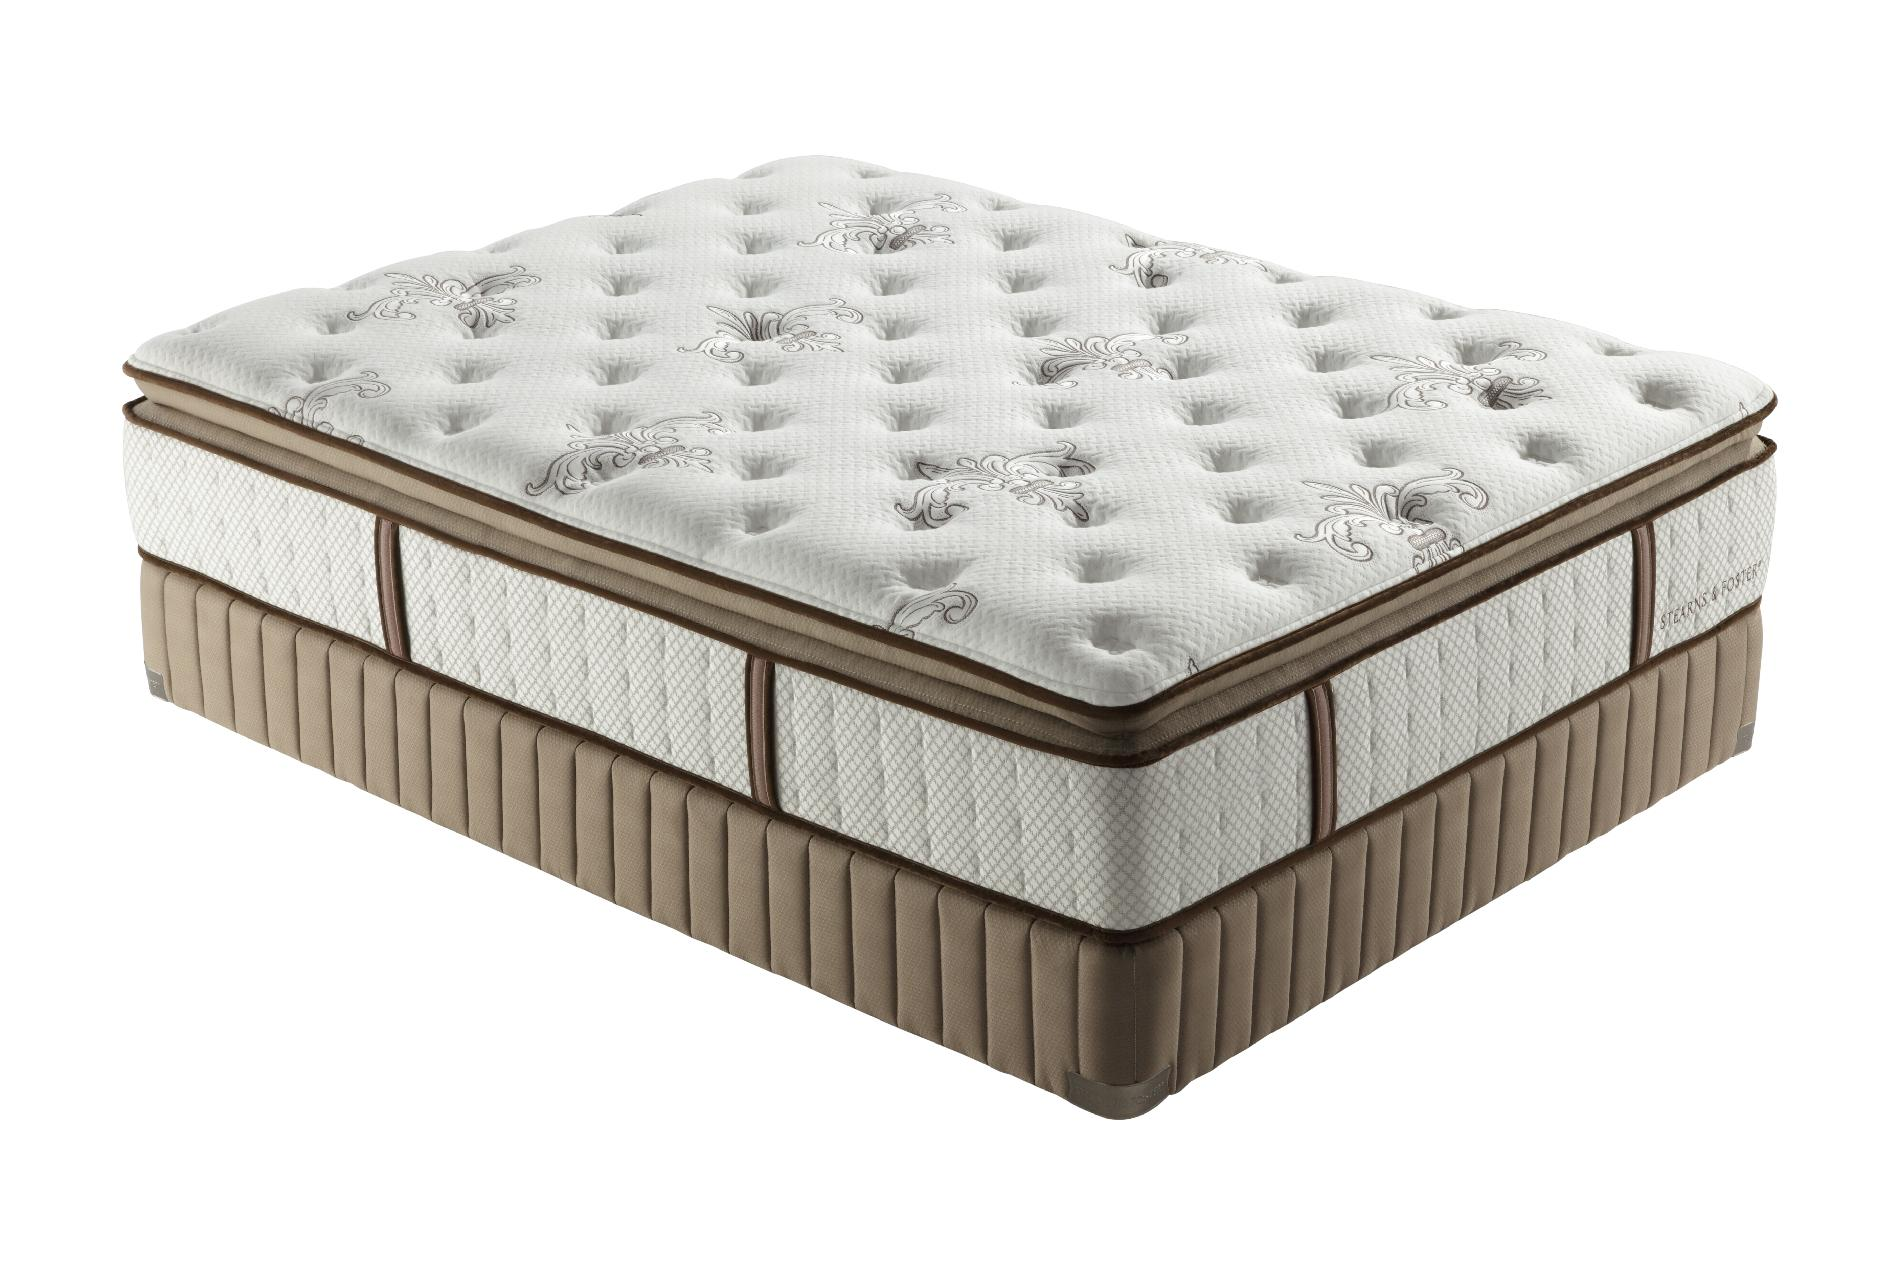 Stearns & Foster Estate Chasity Plush Euro Pillowtop King Mattress Only